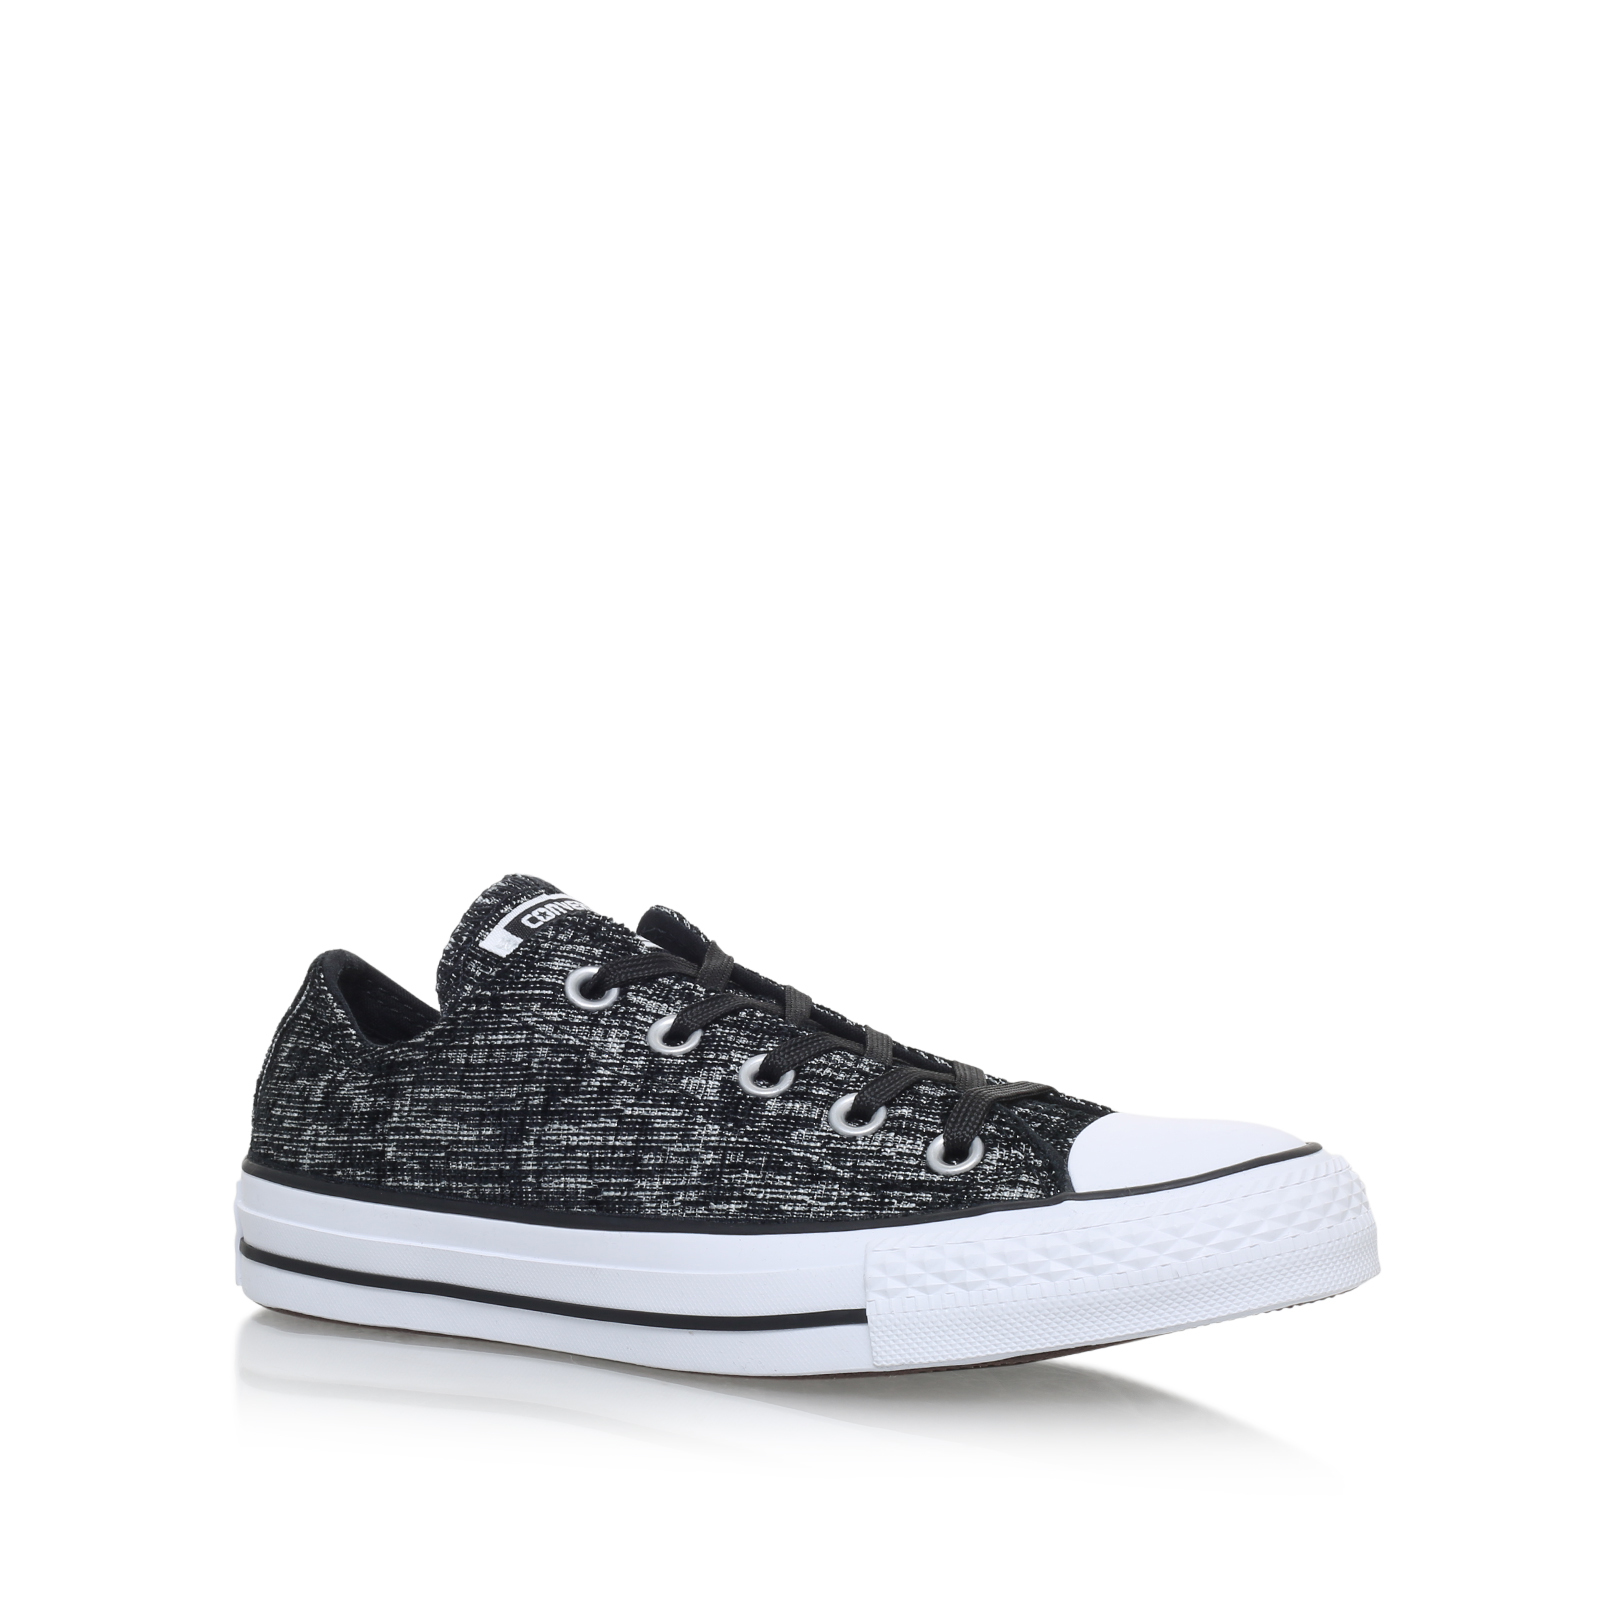 CT SPARKLEKNIT LOW